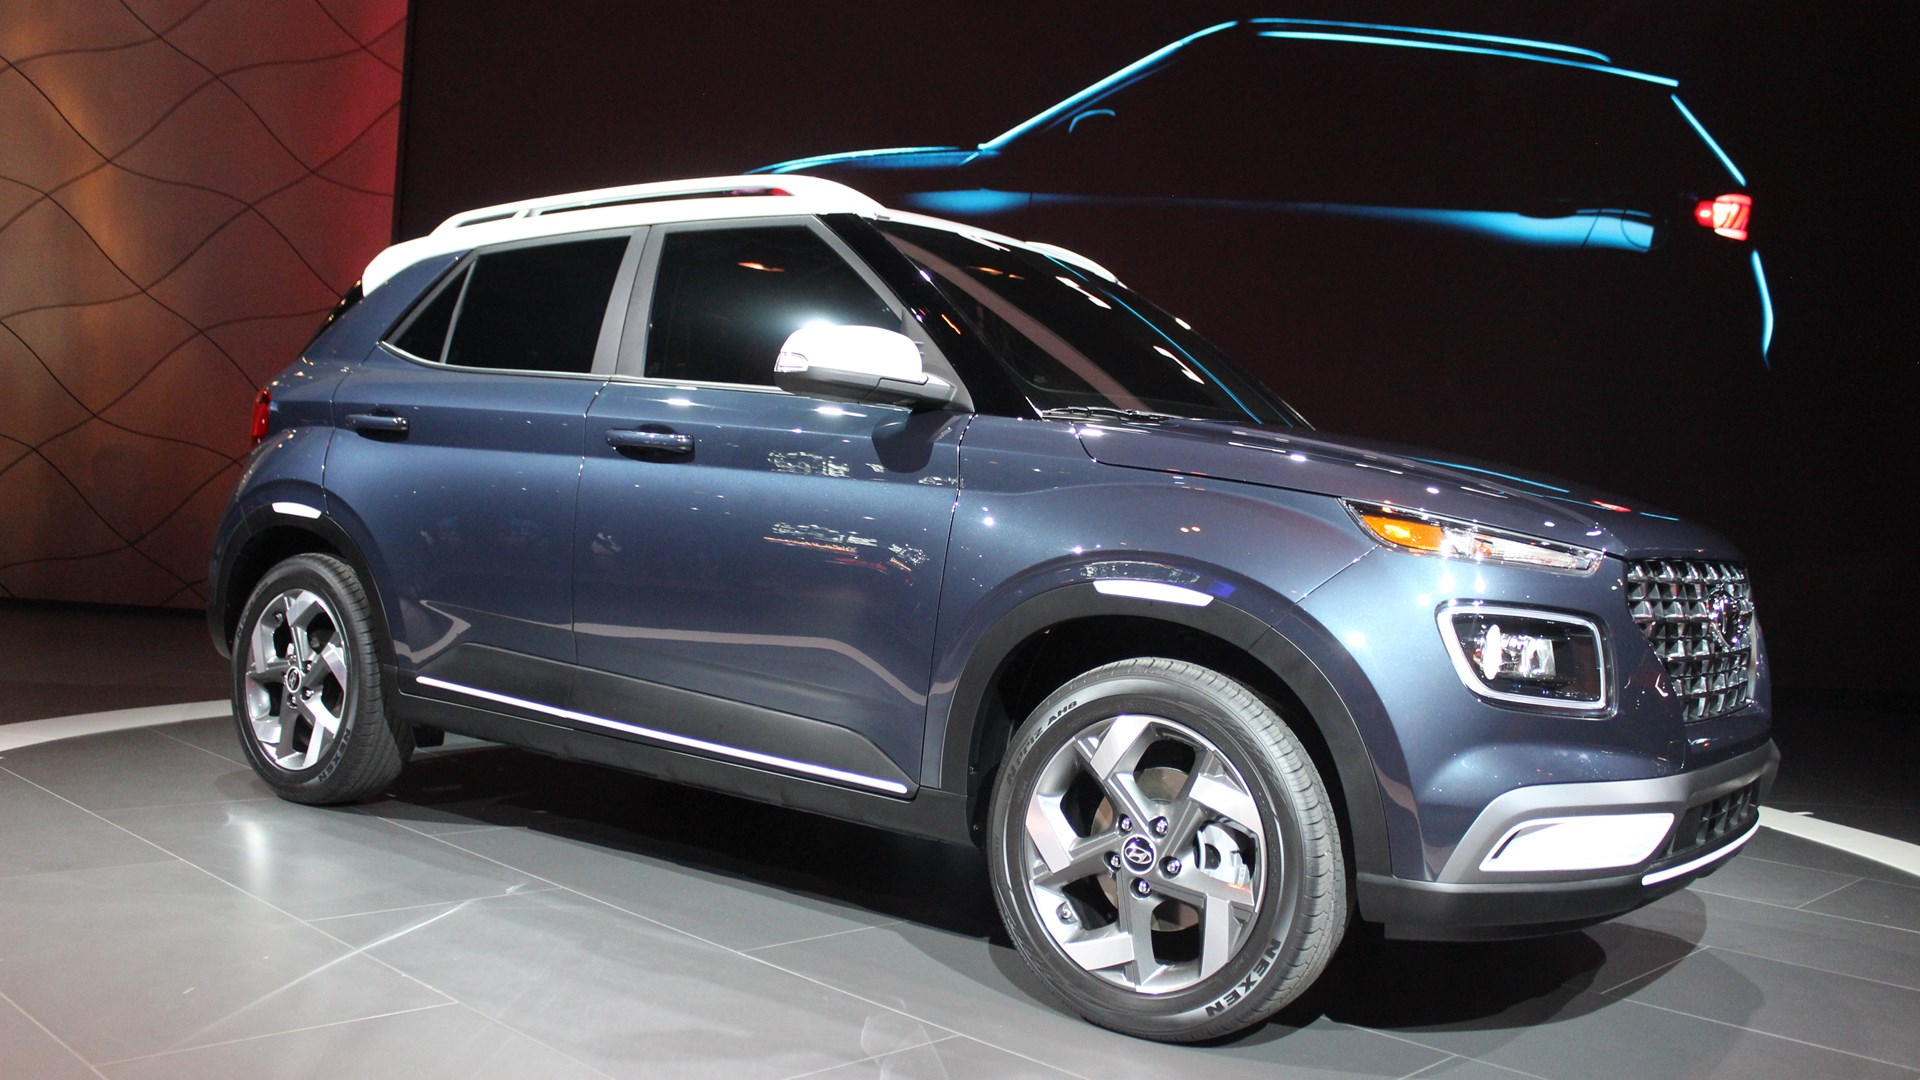 Hyundai Venue create great sensation in market; Many companies gave huge offers on Compact SUV